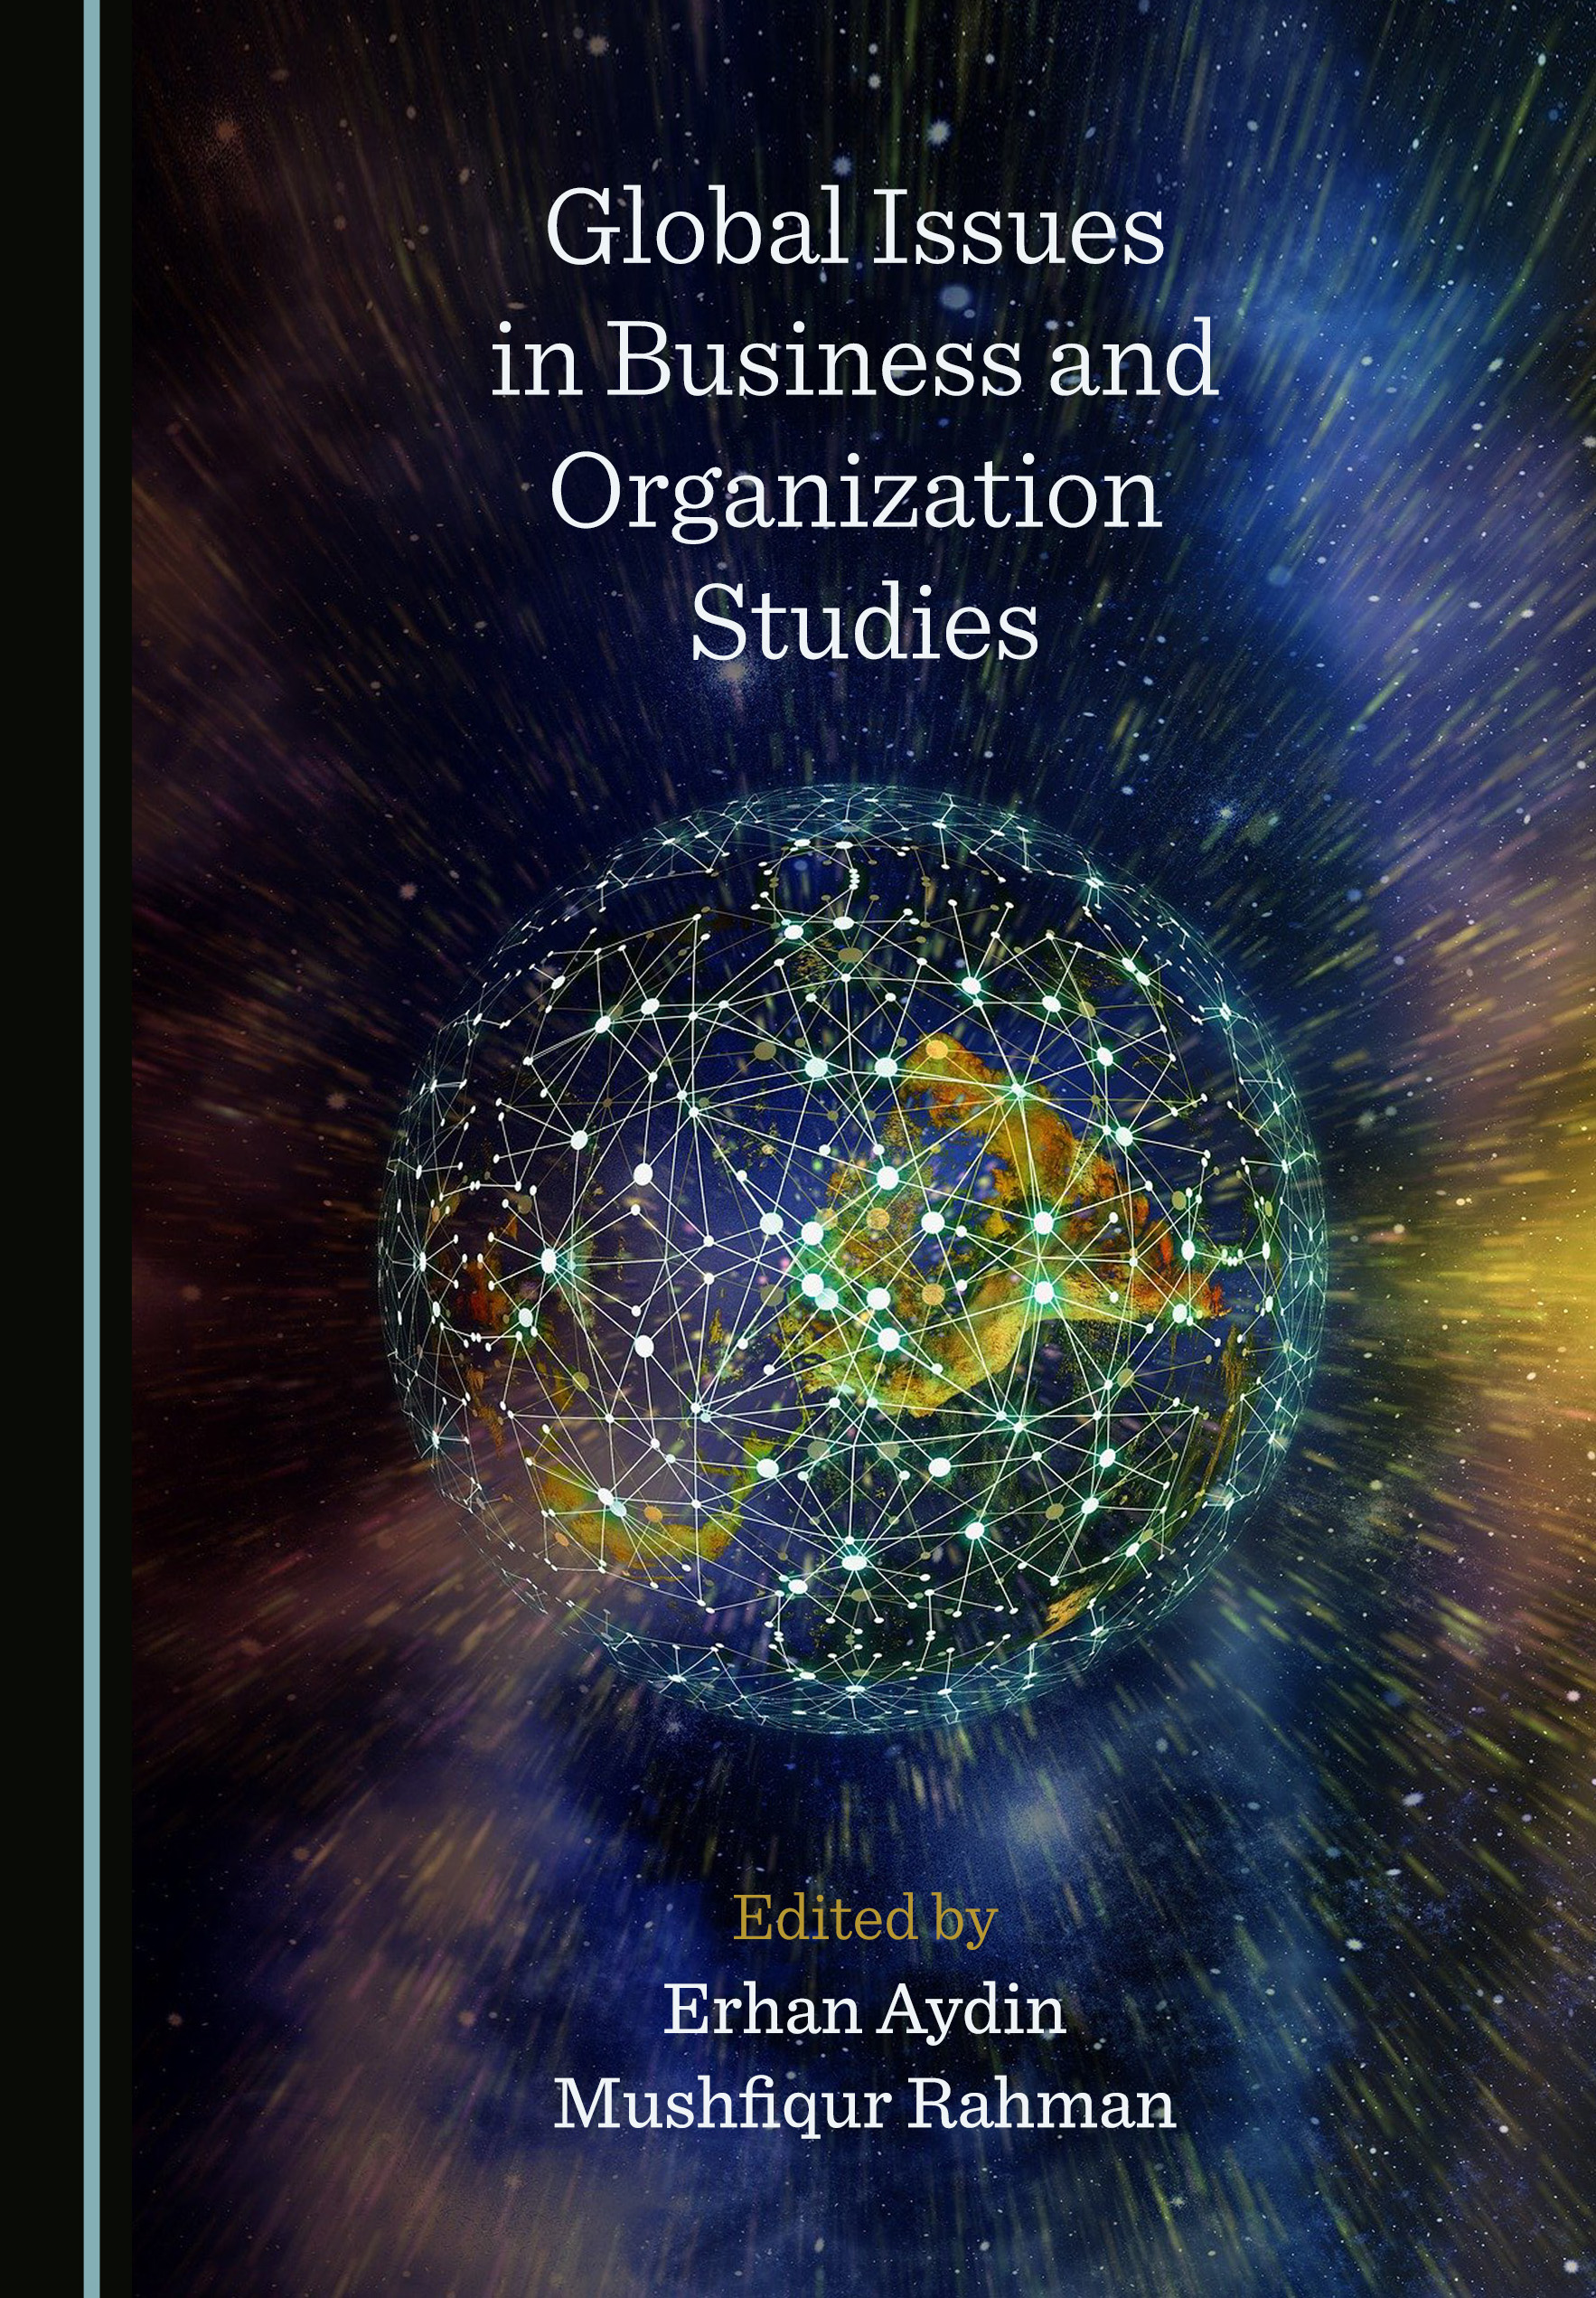 Global Issues in Business and Organization Studies